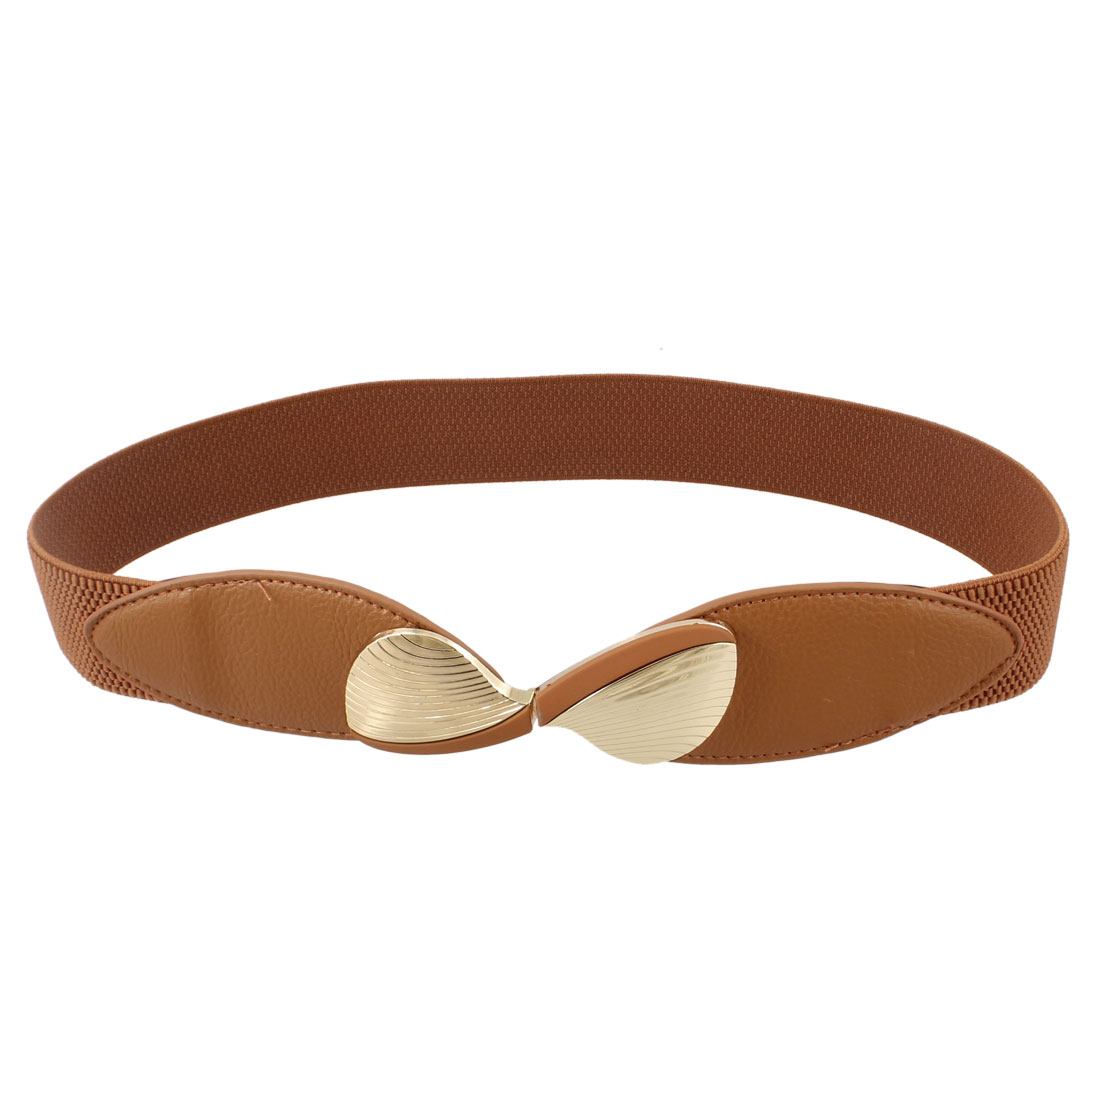 Metal Fanshaped Interlocking Buckle Stretchy Waistband Belt Brown for Women